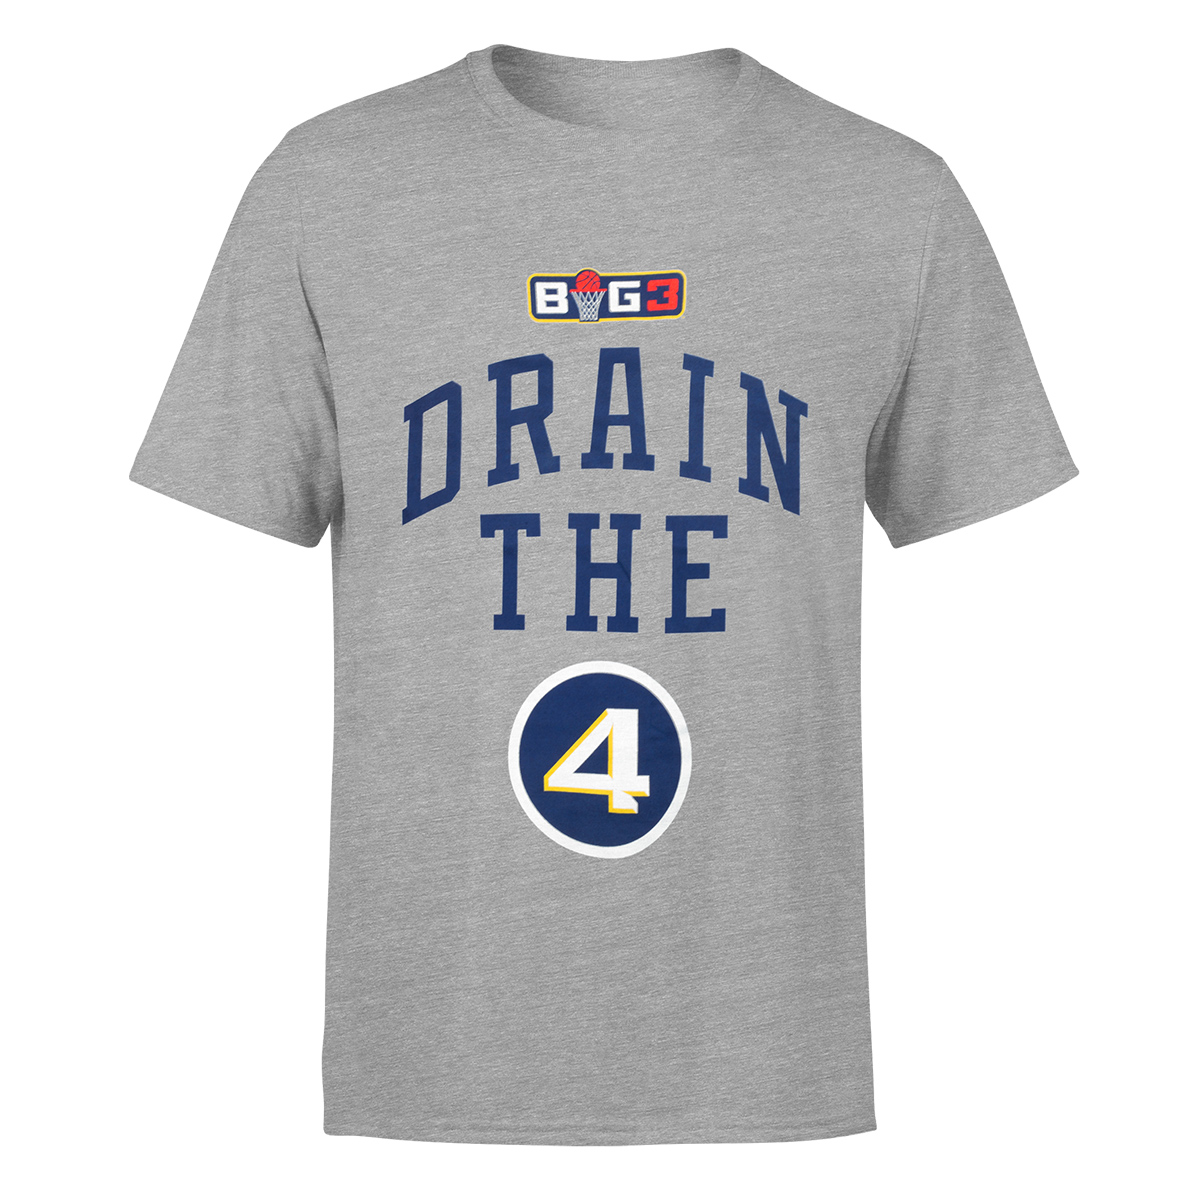 Drain the 4 Grey T-Shirt